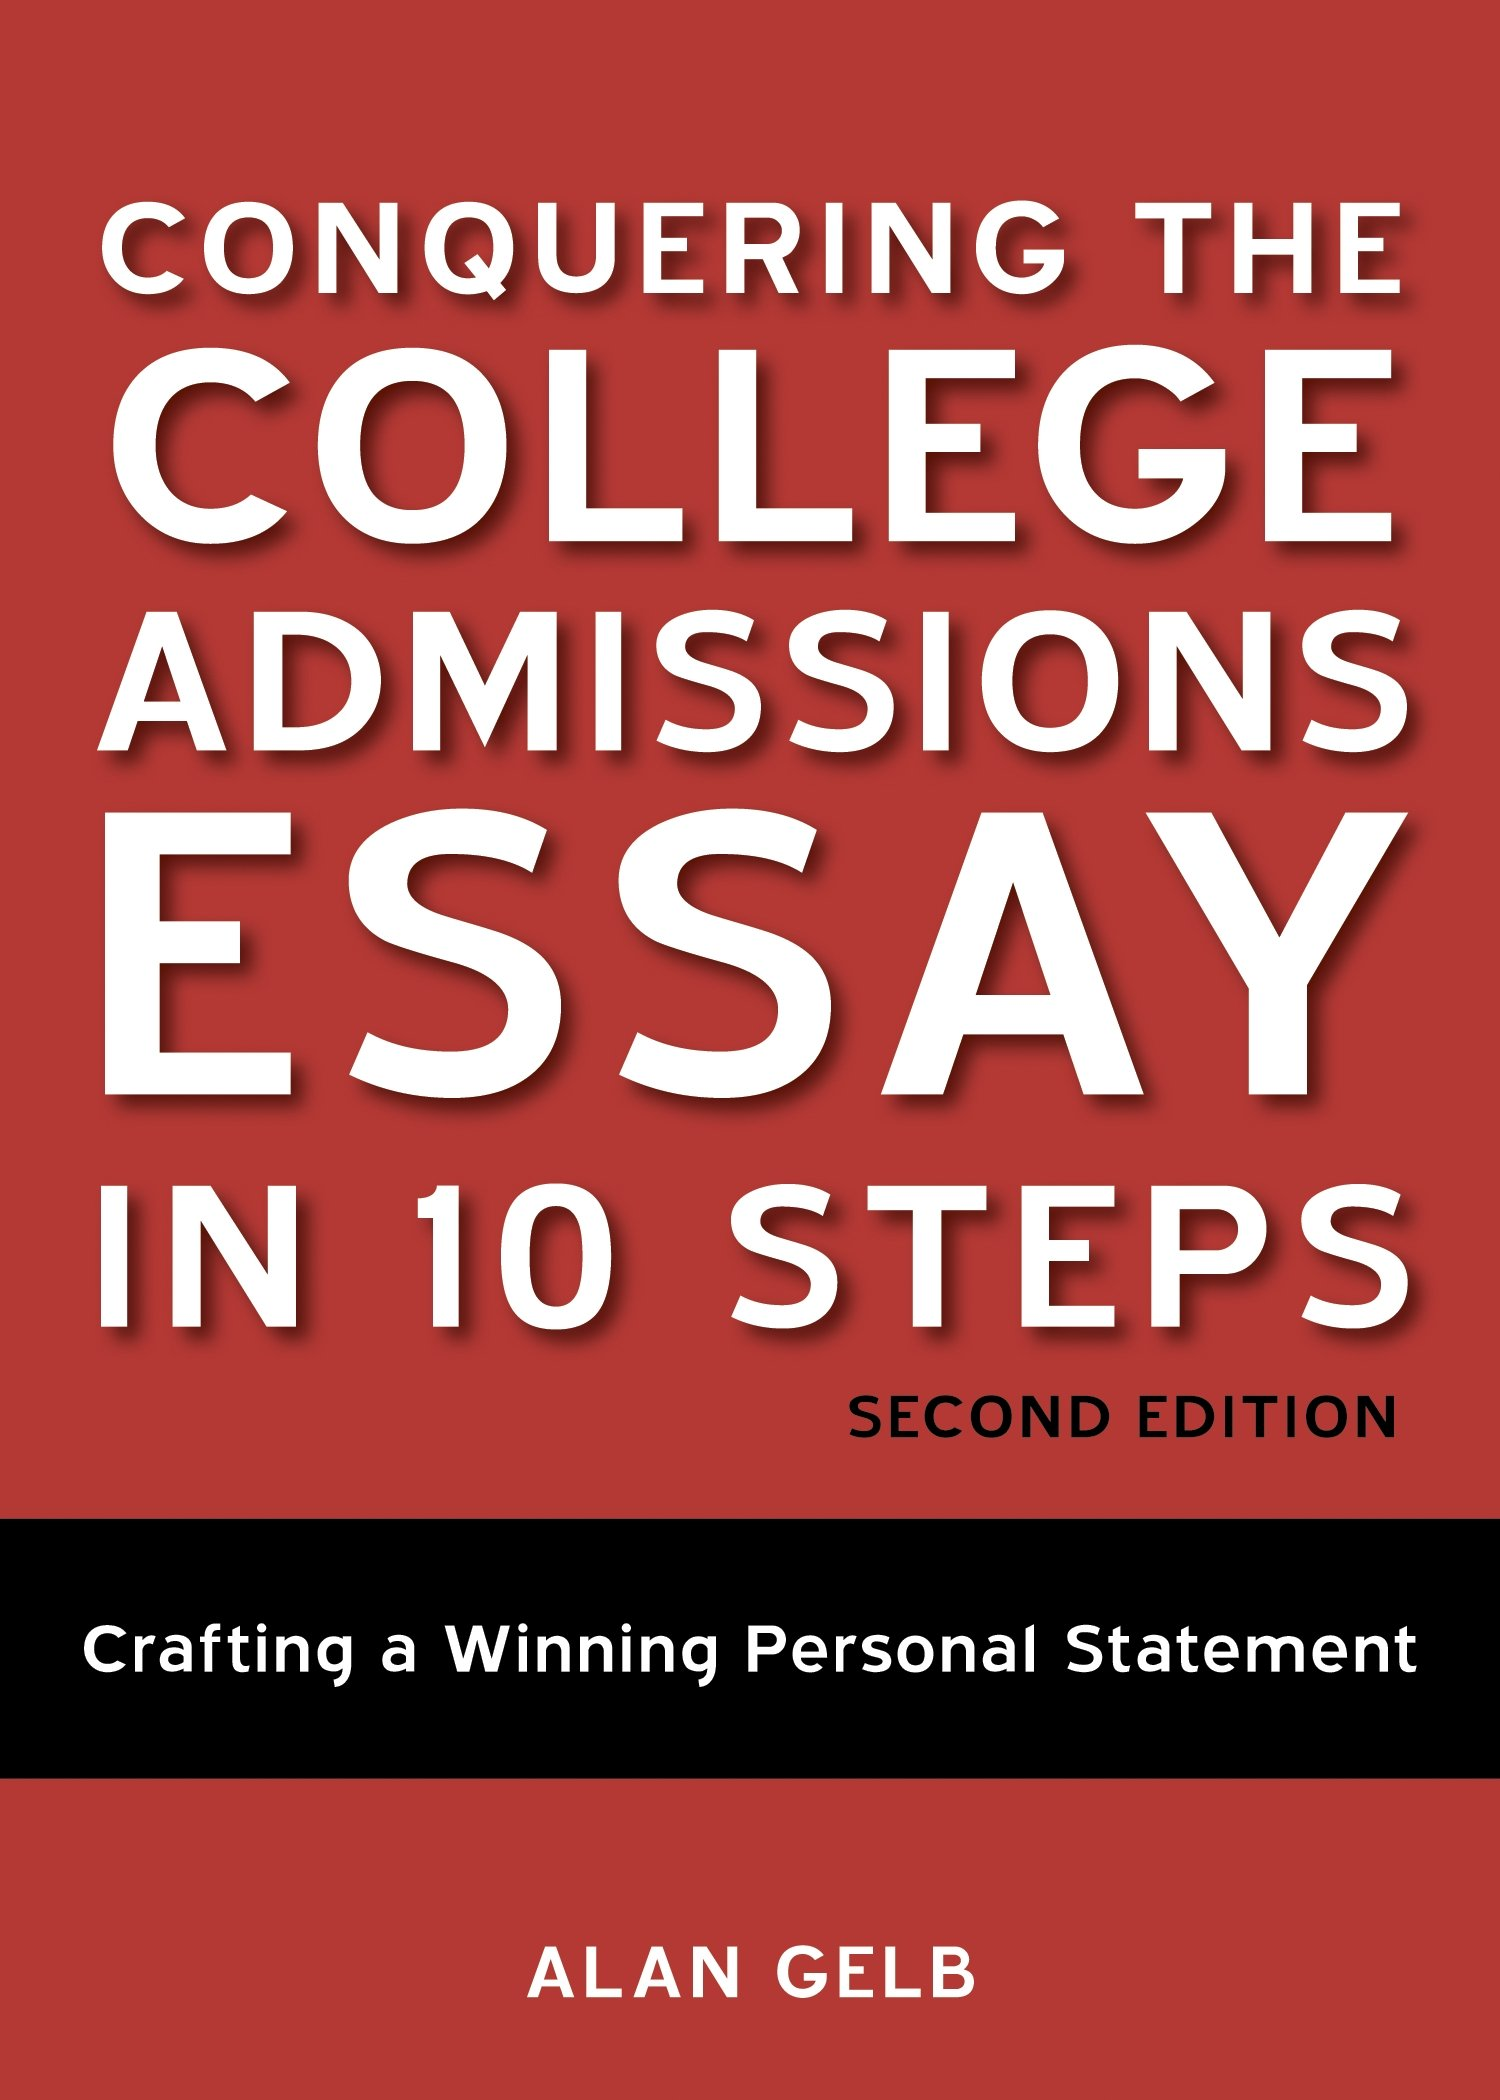 Conquering the college admissions essay in 10 steps crafting a winning personal statement types of hobbies essay